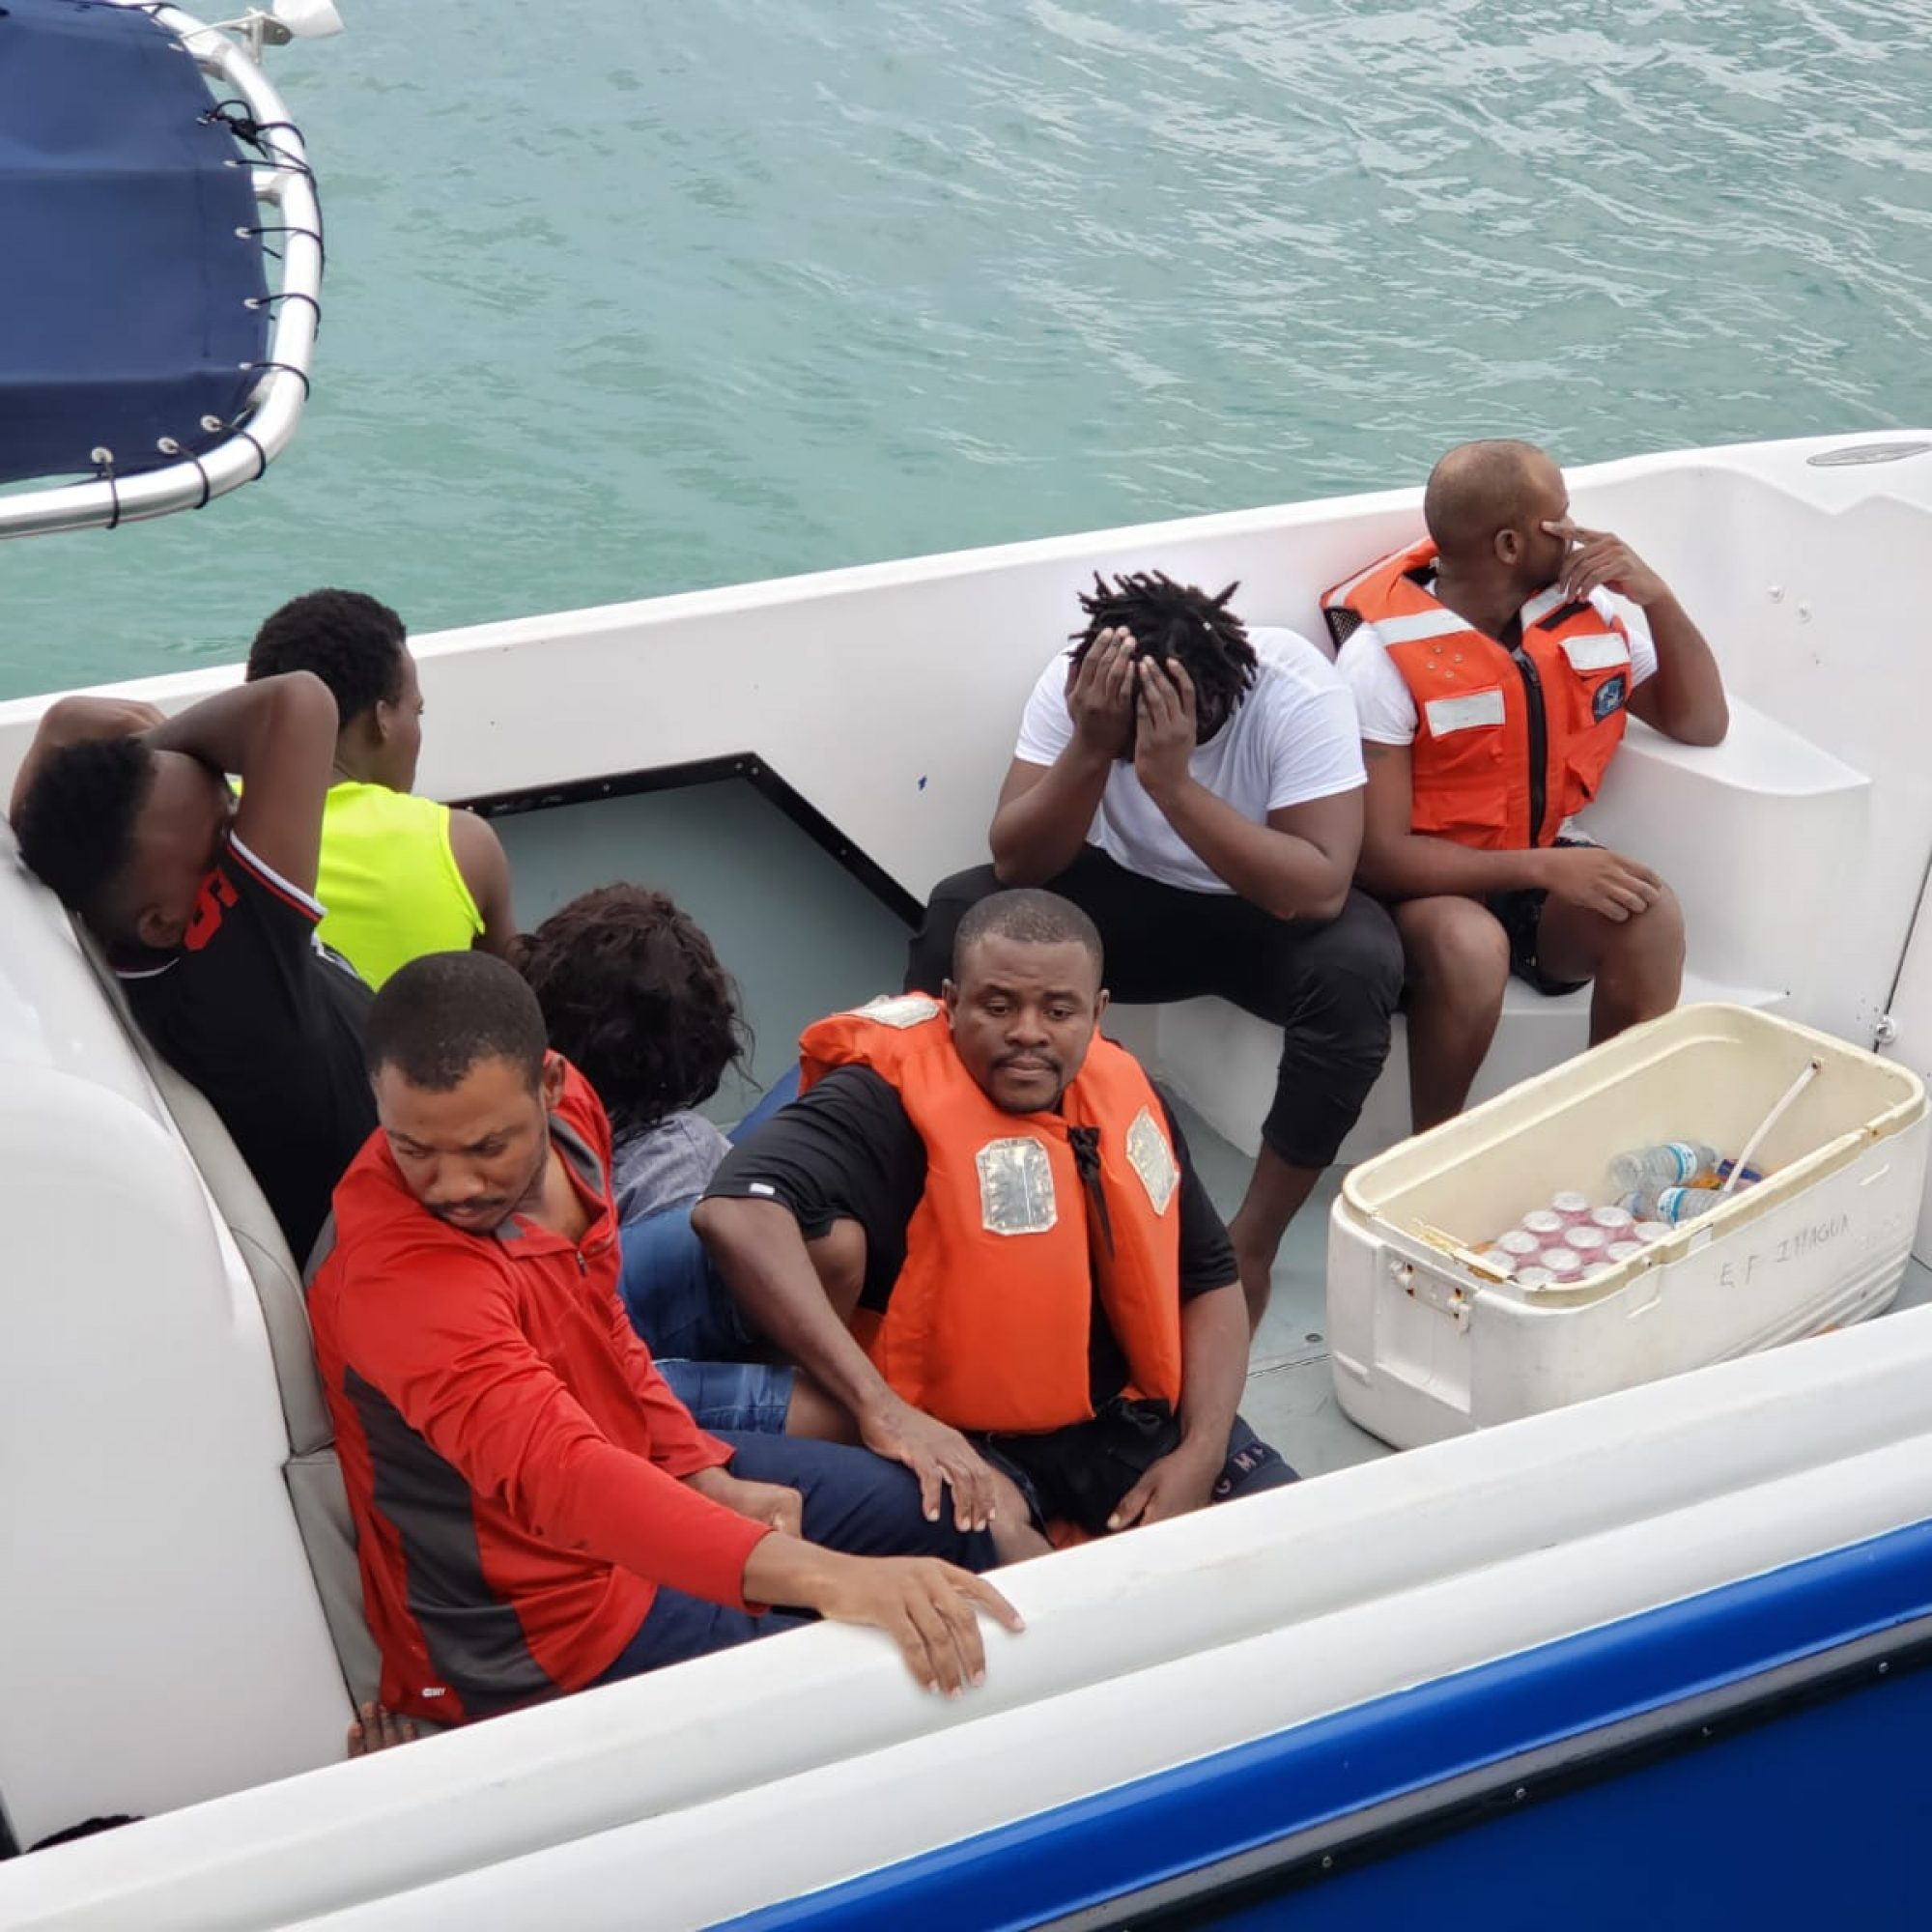 12 migrants rescued at sea, search continues for others